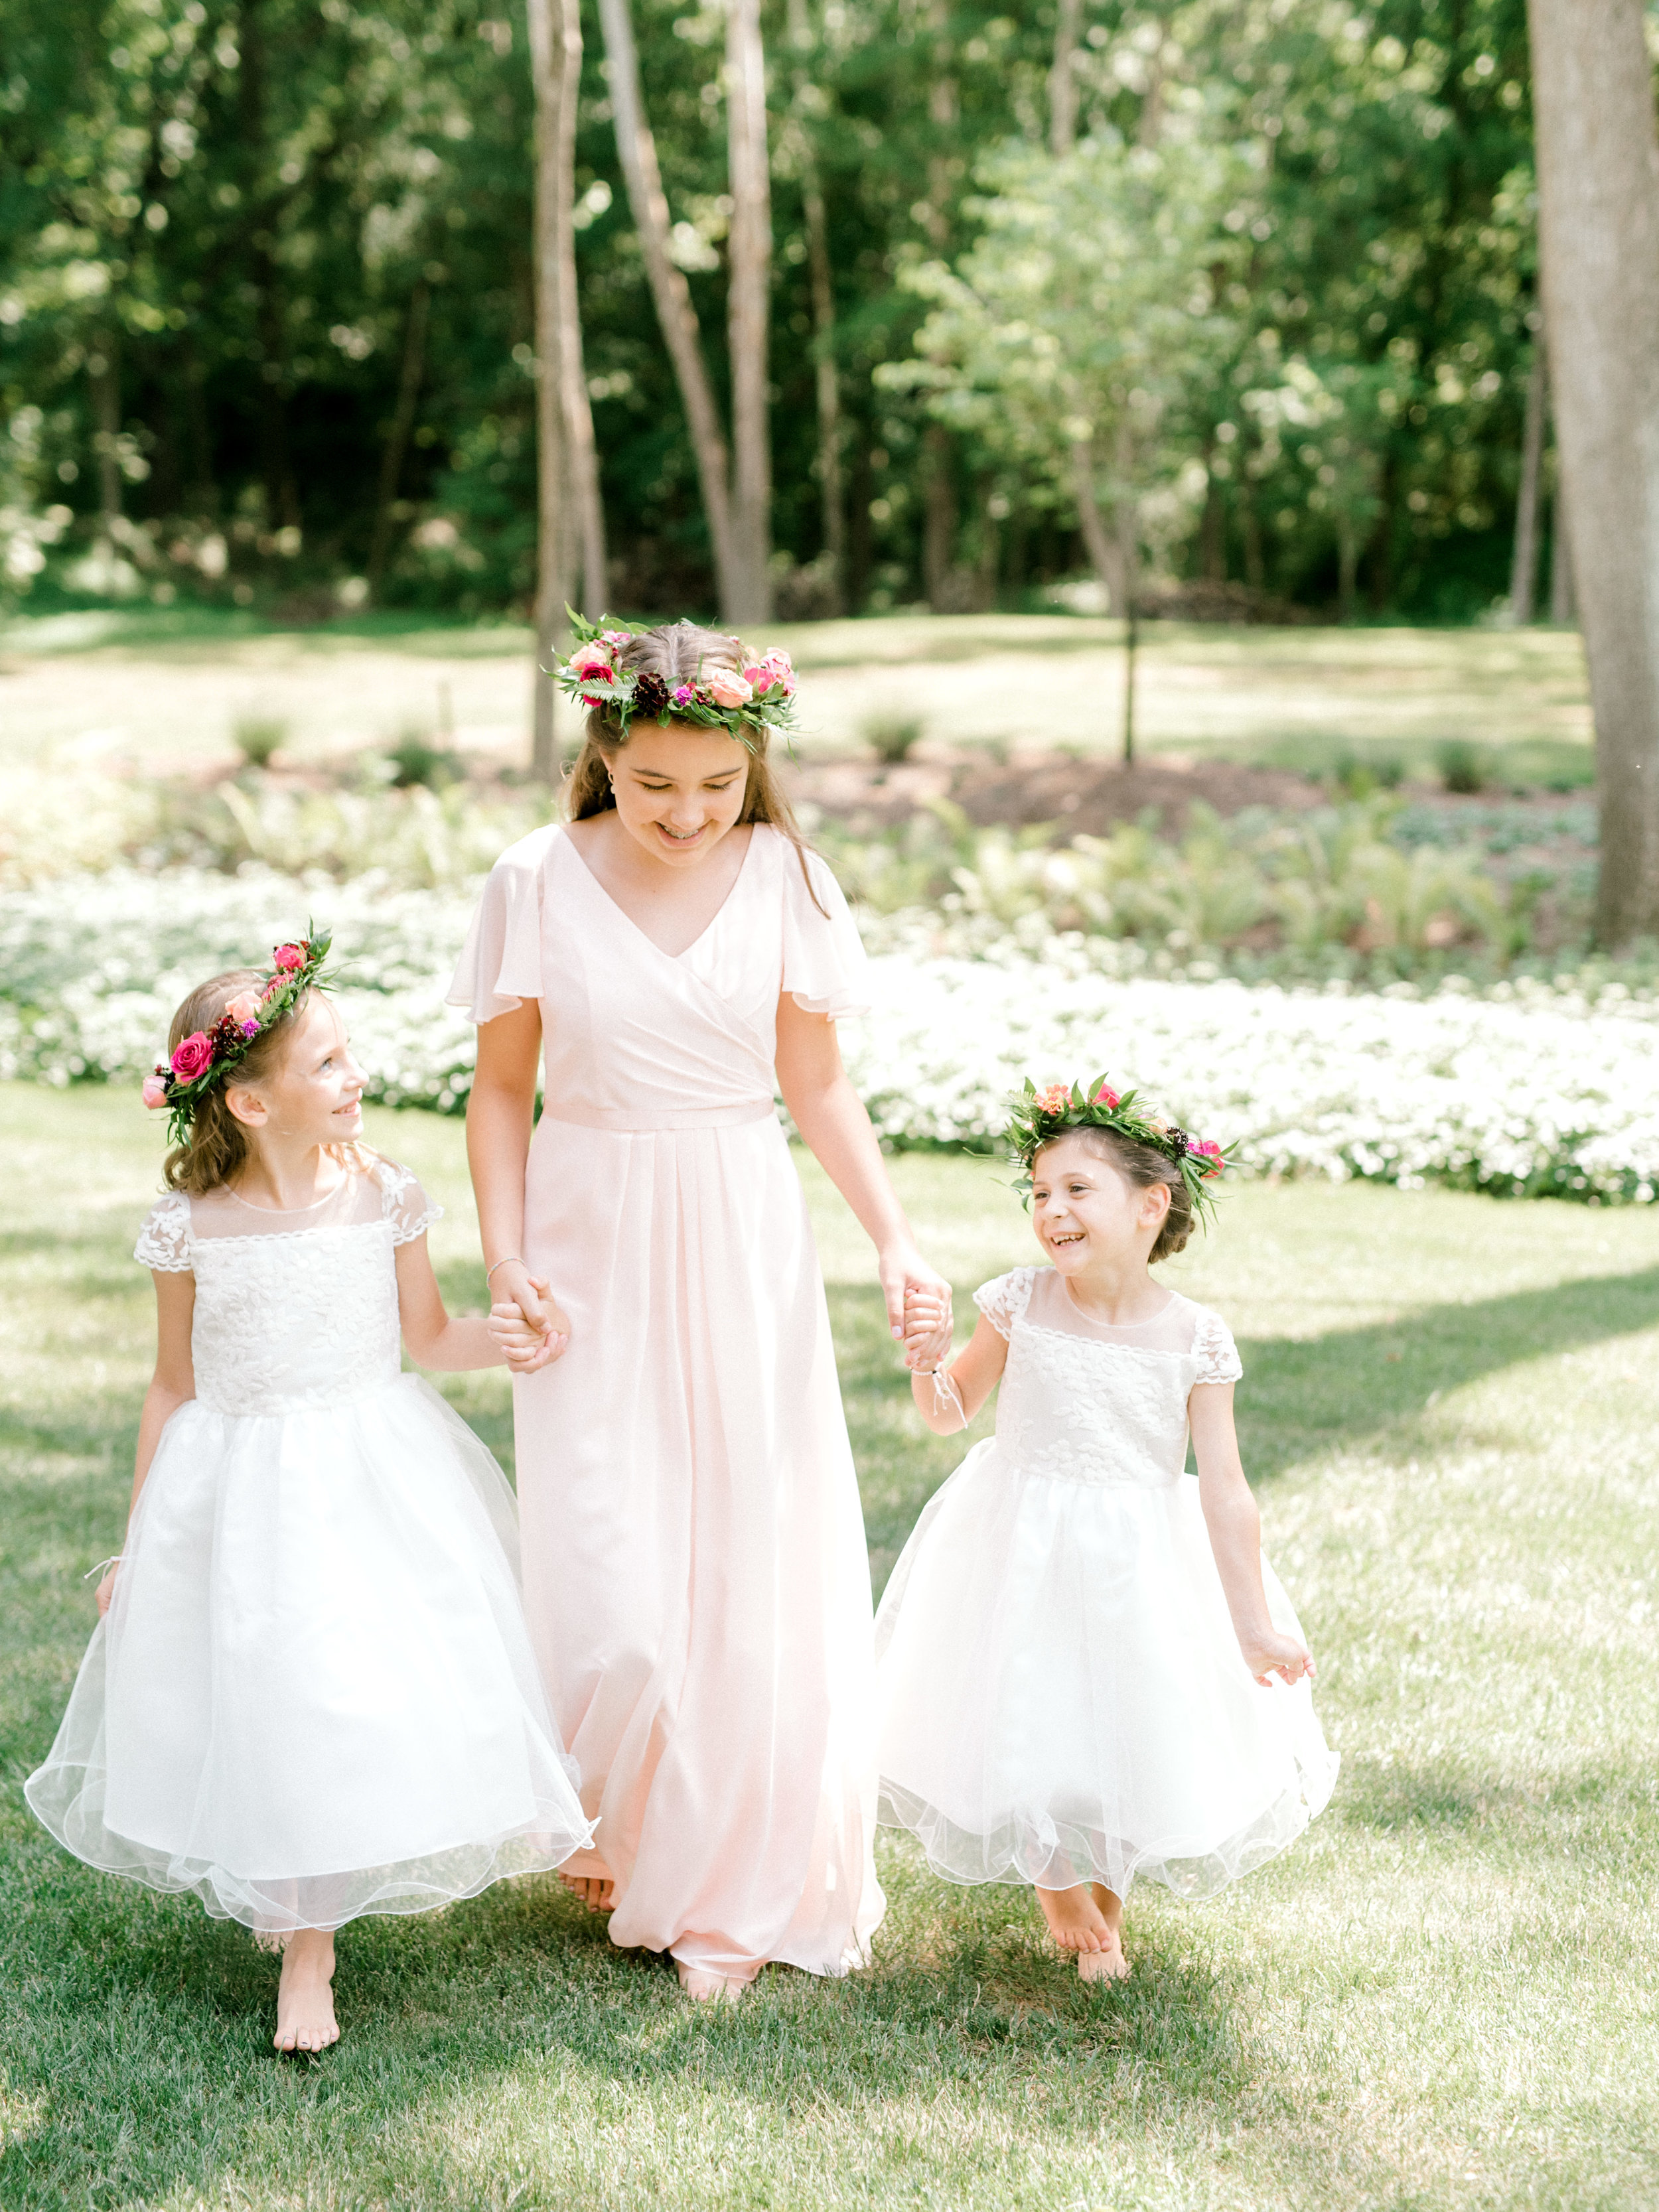 The prettiest little flower girls in pink and white for Lindsey and James's bright and modern summer wedding at Hotel du Village.